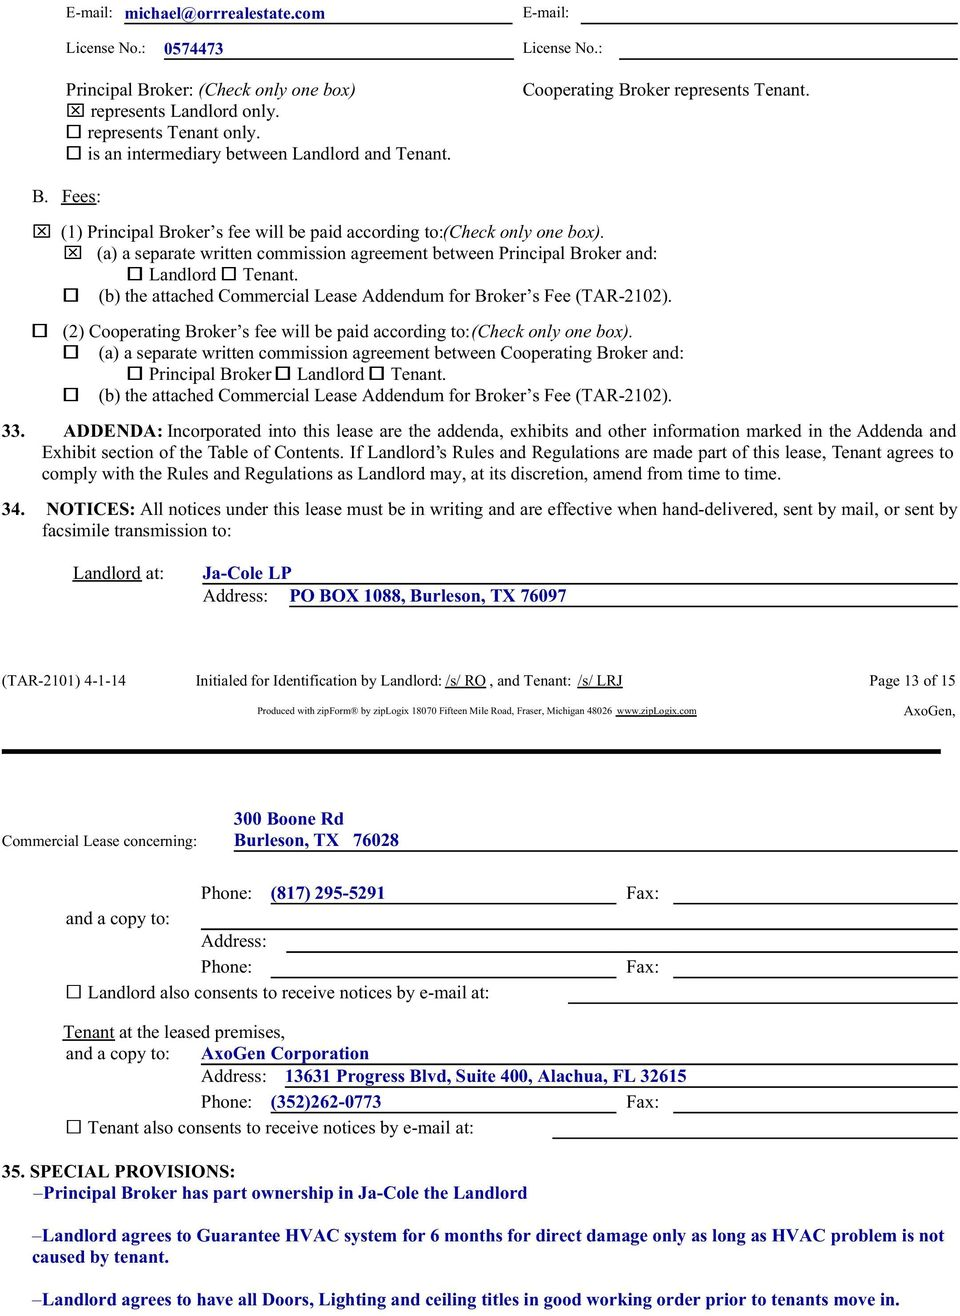 Form 8 K Axogen Inc Exact Name Of Registrant As